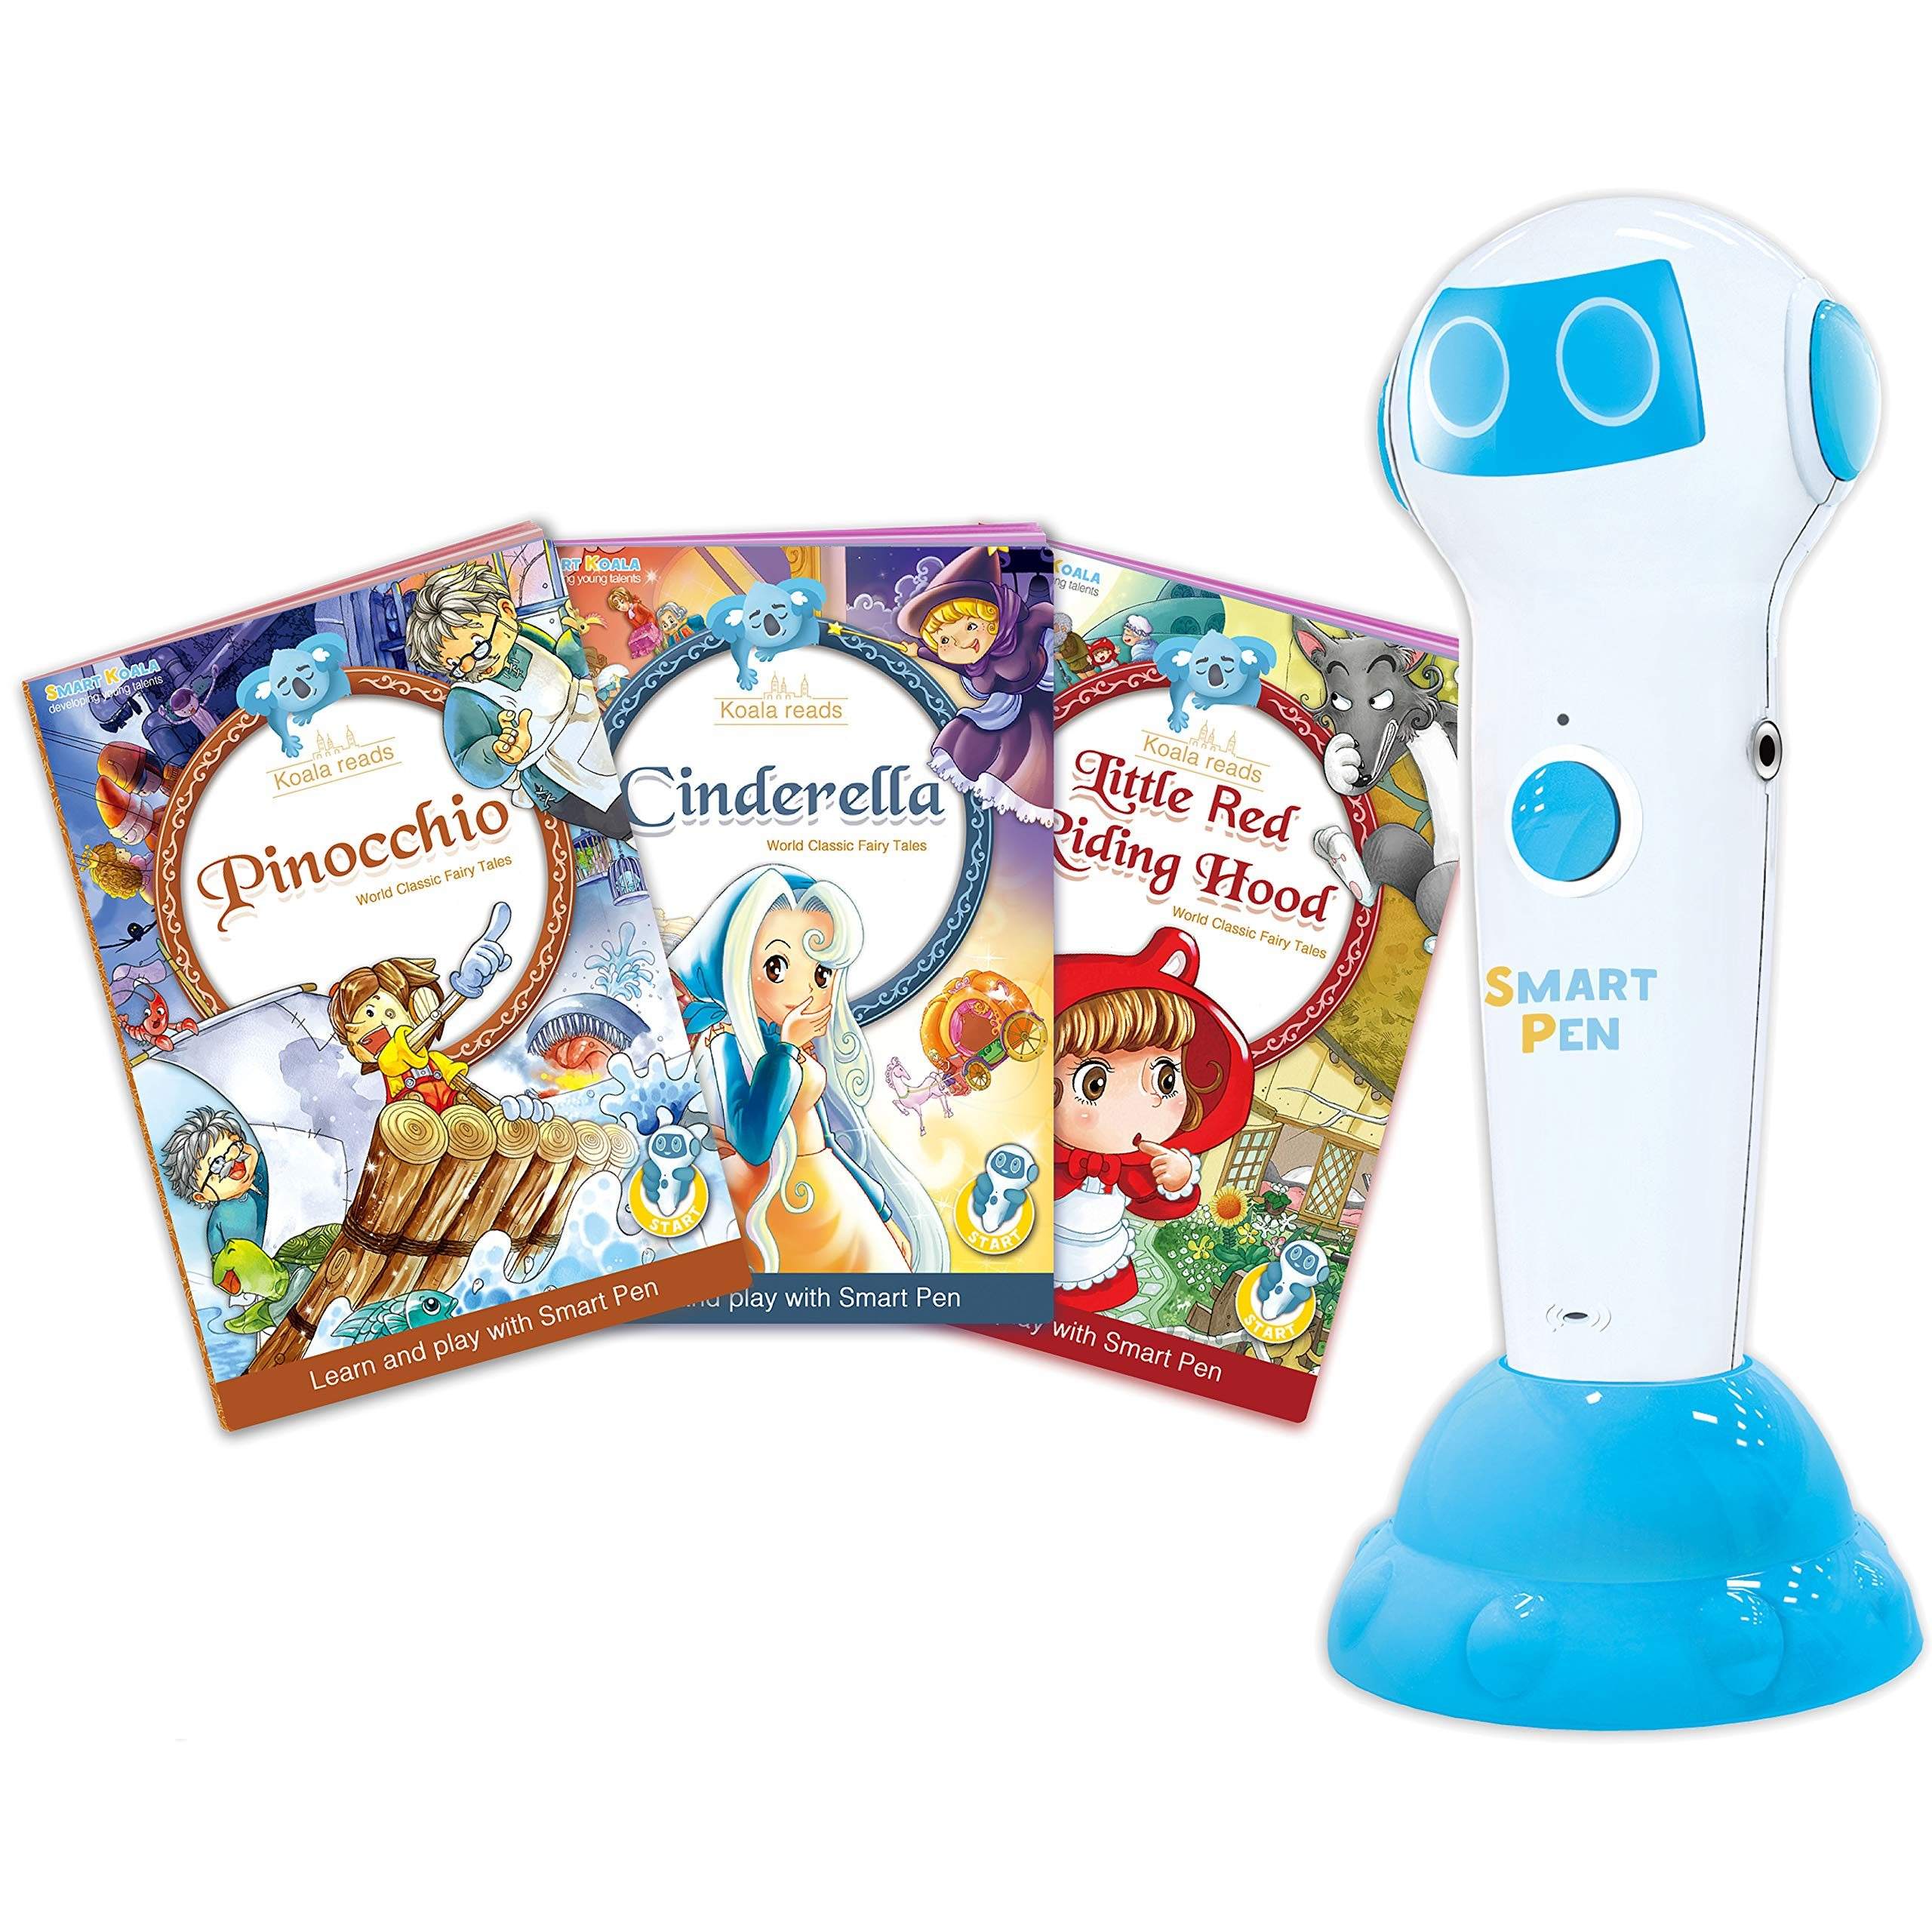 Talking Pen + 3 Fairy Tales Bundle (Pinocchio, Cinderella, Red Hood). The most Entertaining Books for learning Reading and Spelling Skills. English and foreign Languages (Spanish, German for free)